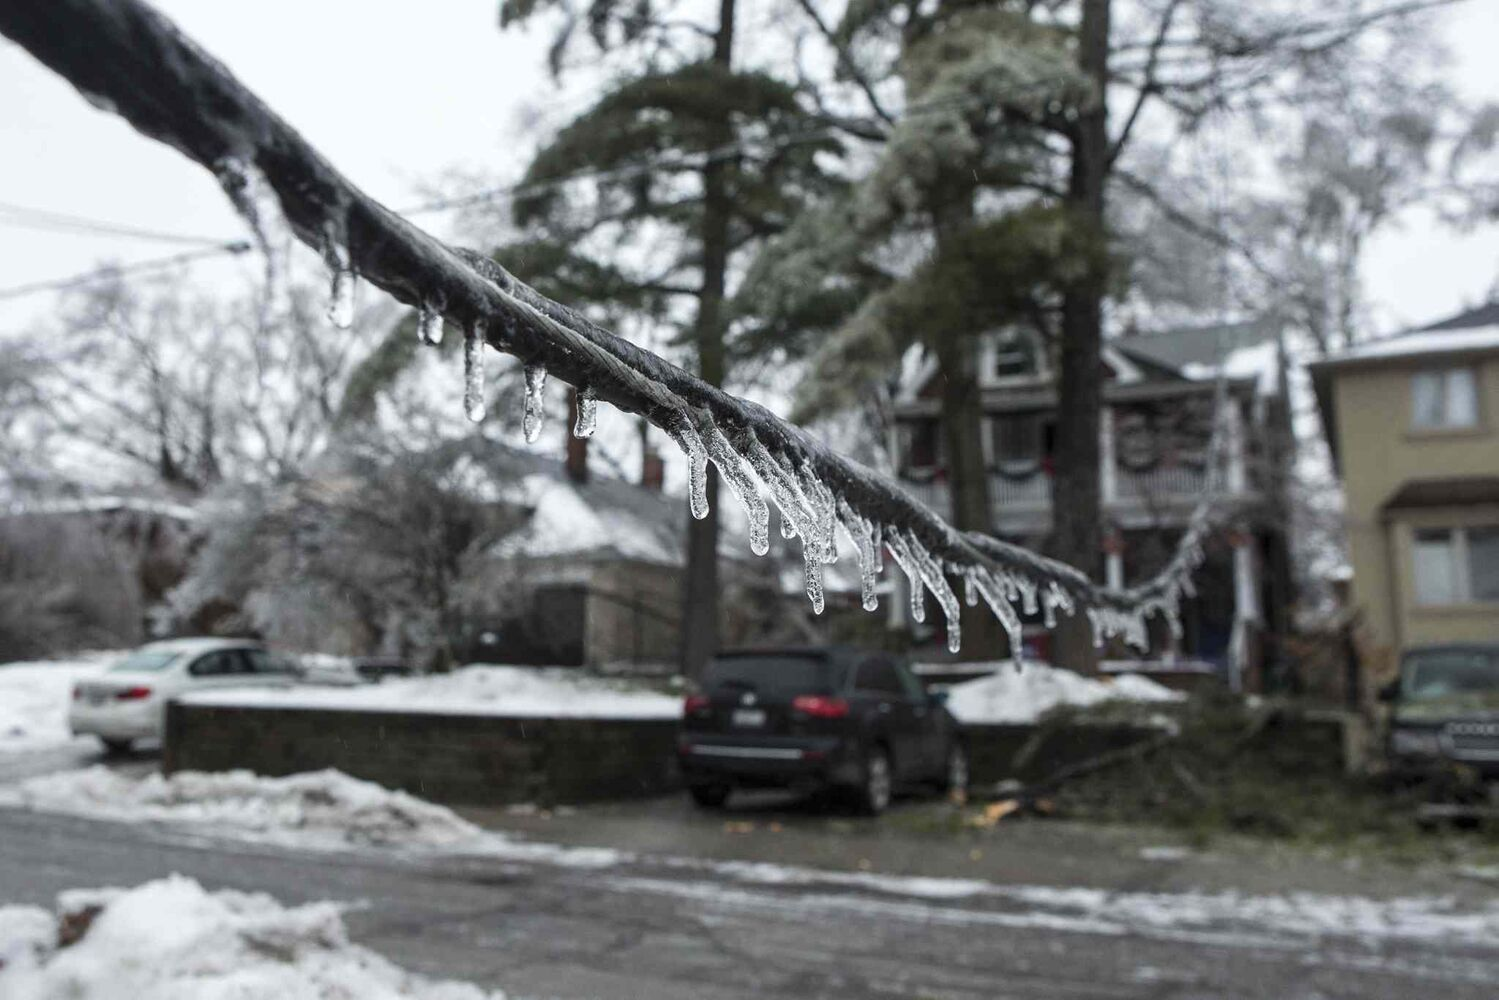 Icicles hang from a downed power line on a residential street in Toronto Sunday. Over 250,000 people face up to 72 hours without electricity after a heavy storm. (Chris Young / The Canadian Press)